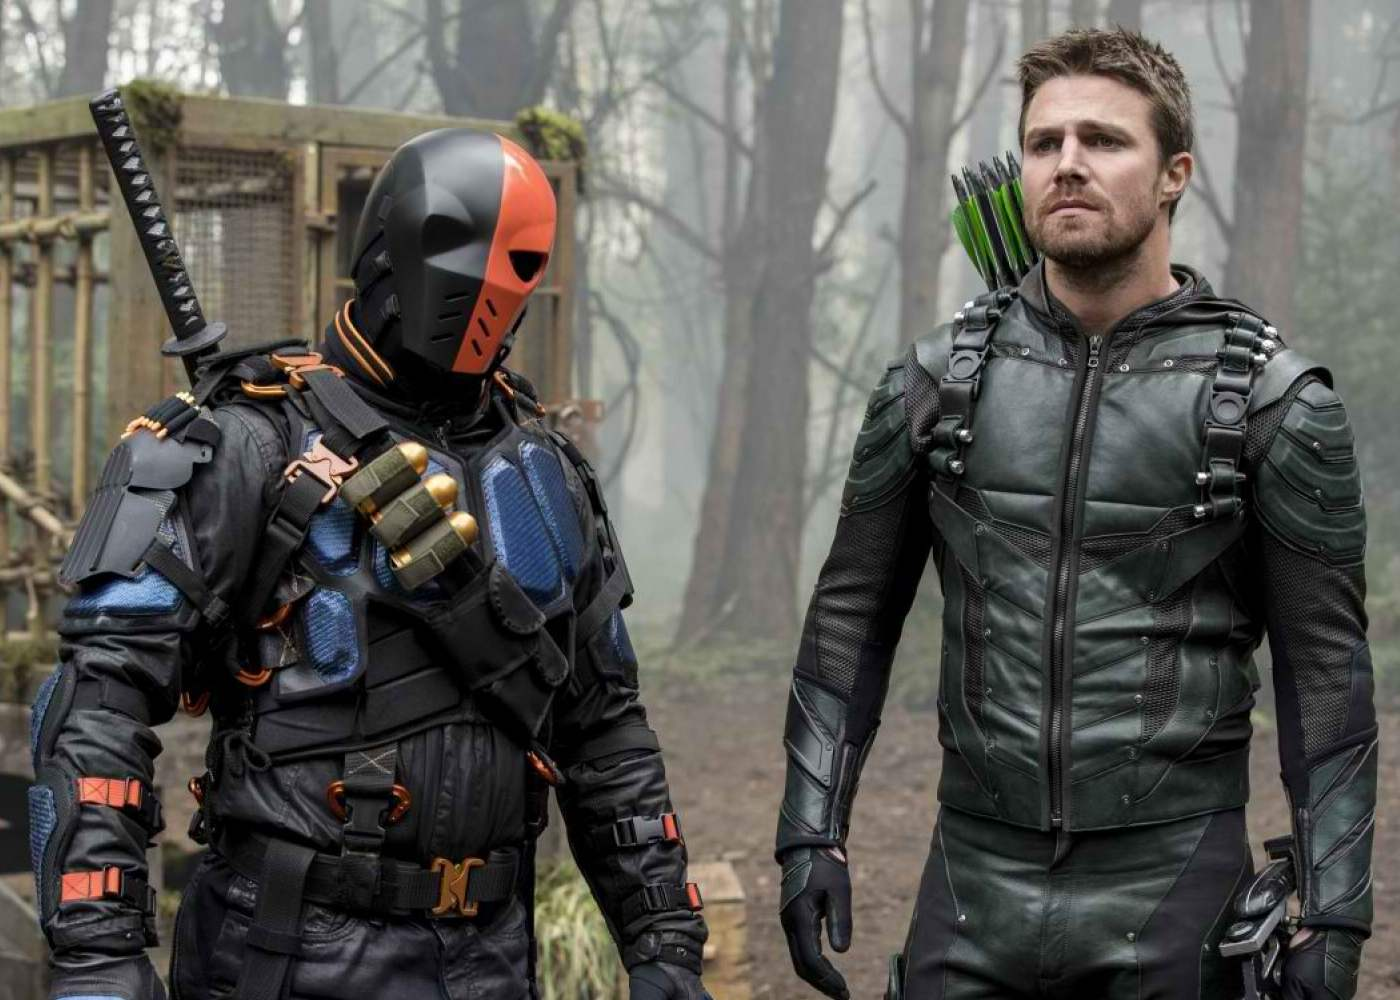 Expect to See More of Deathstroke in Arrow Season 6